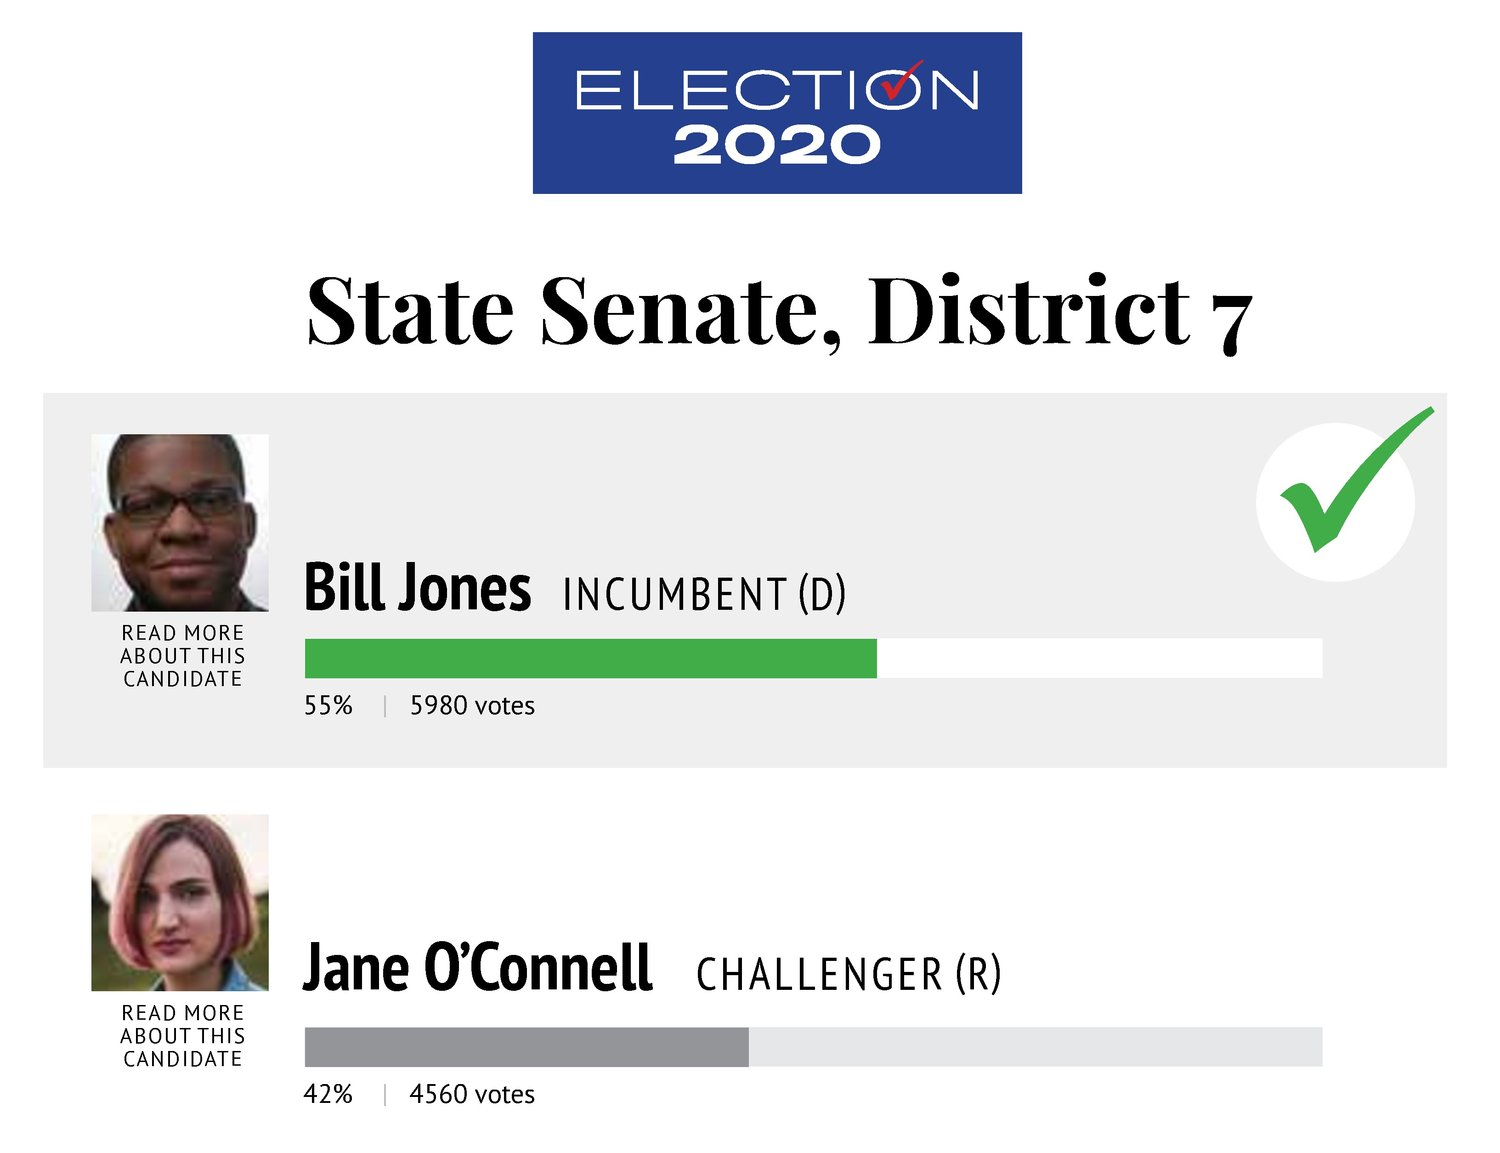 On election night, the app also handles results using a half dozen attractive displays. A simple interface allows staffers to plug in vote totals as they come in.